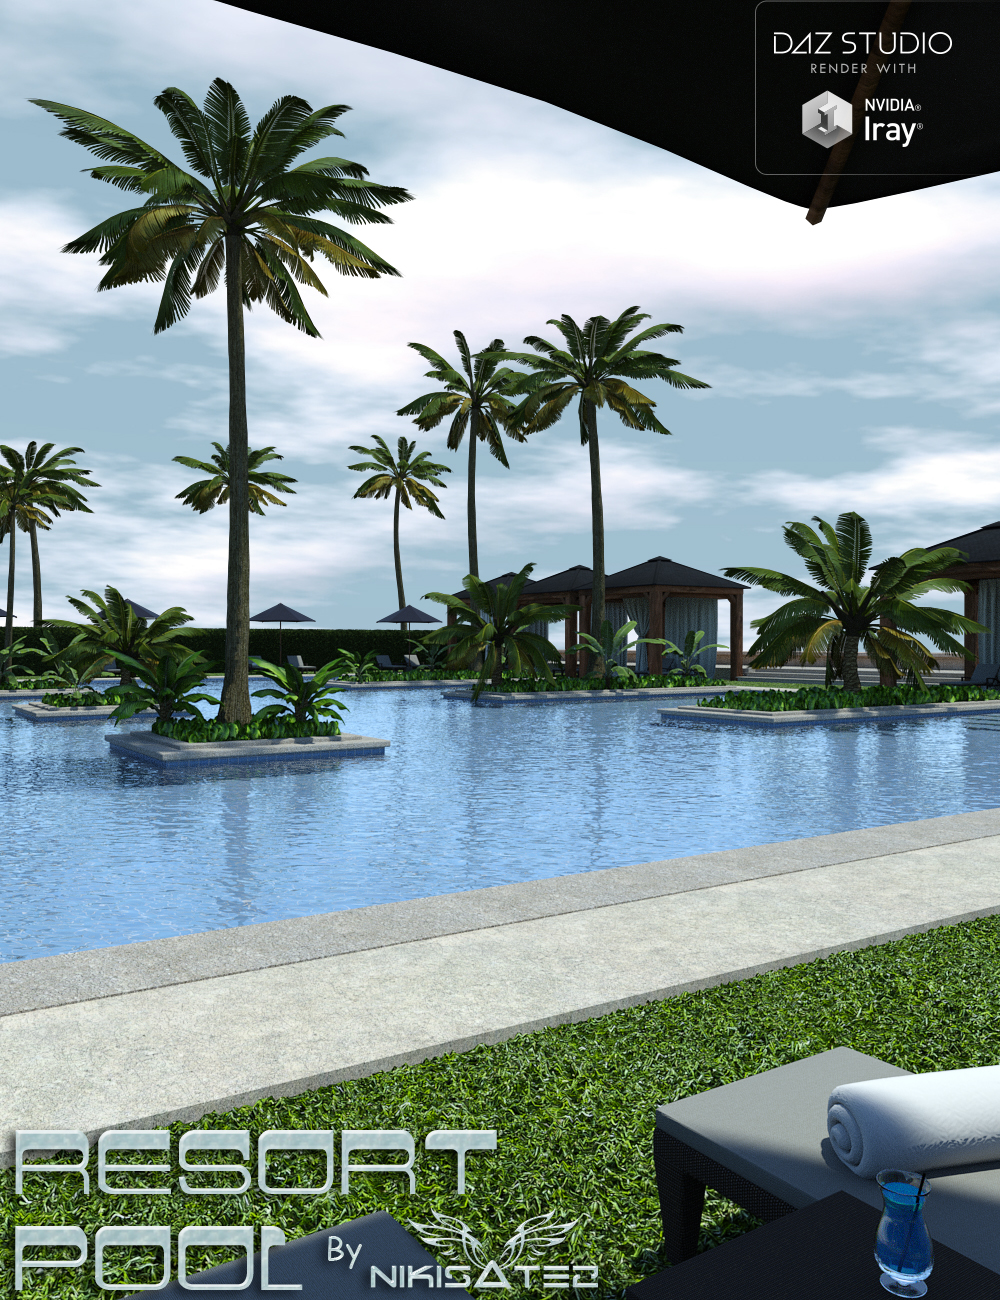 The Resort Pool by: Nikisatez, 3D Models by Daz 3D